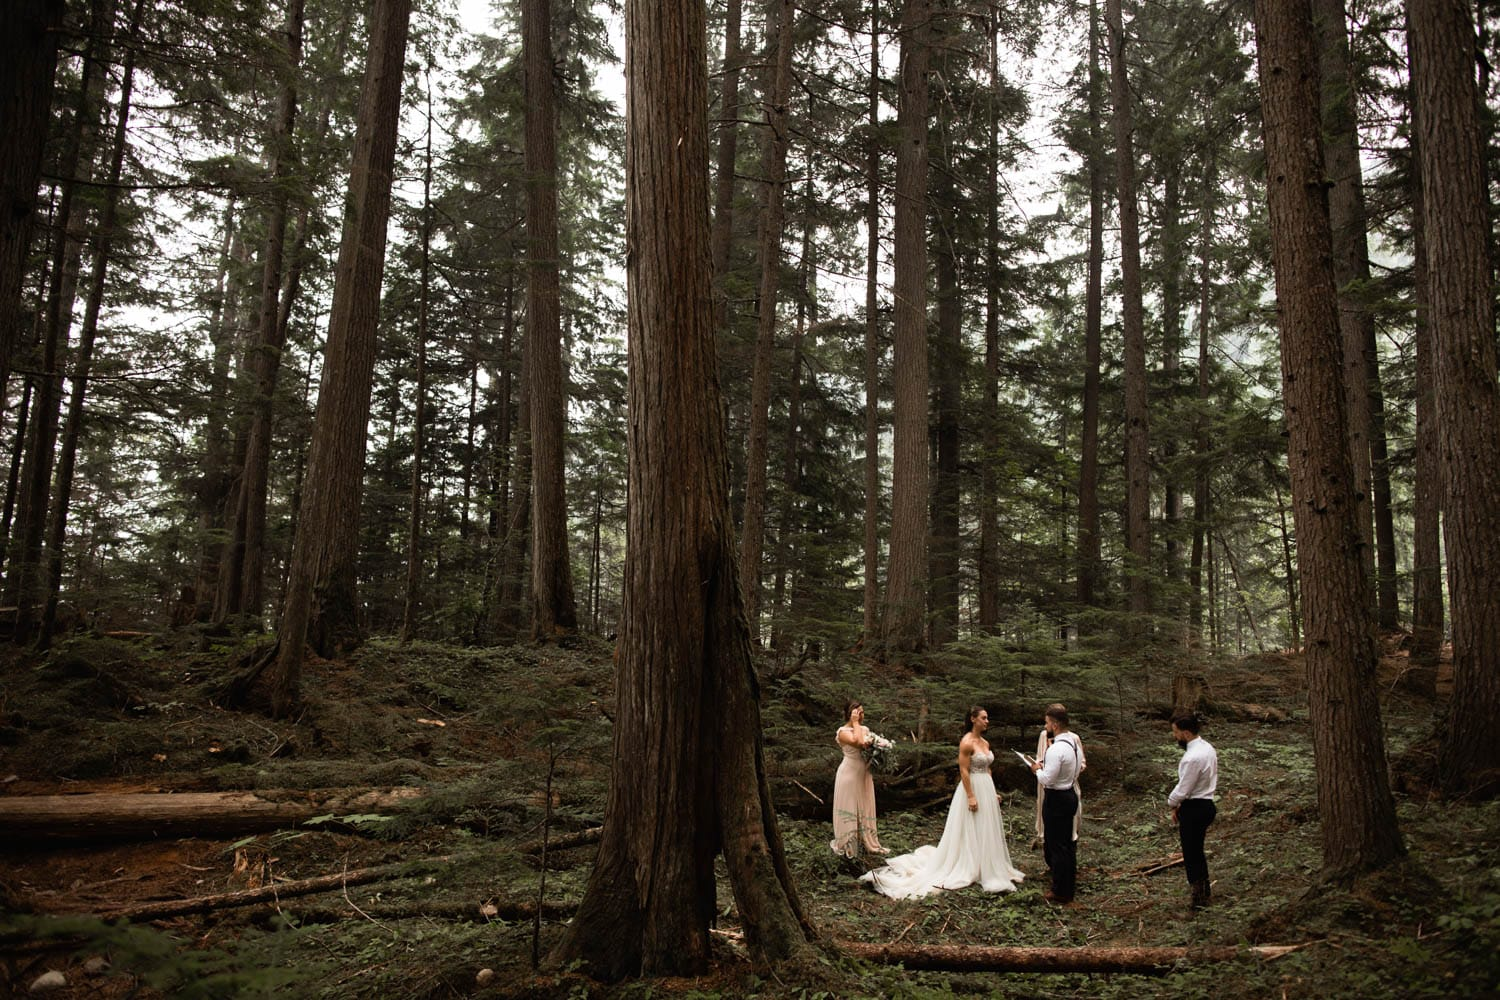 Forest elopement ceremony